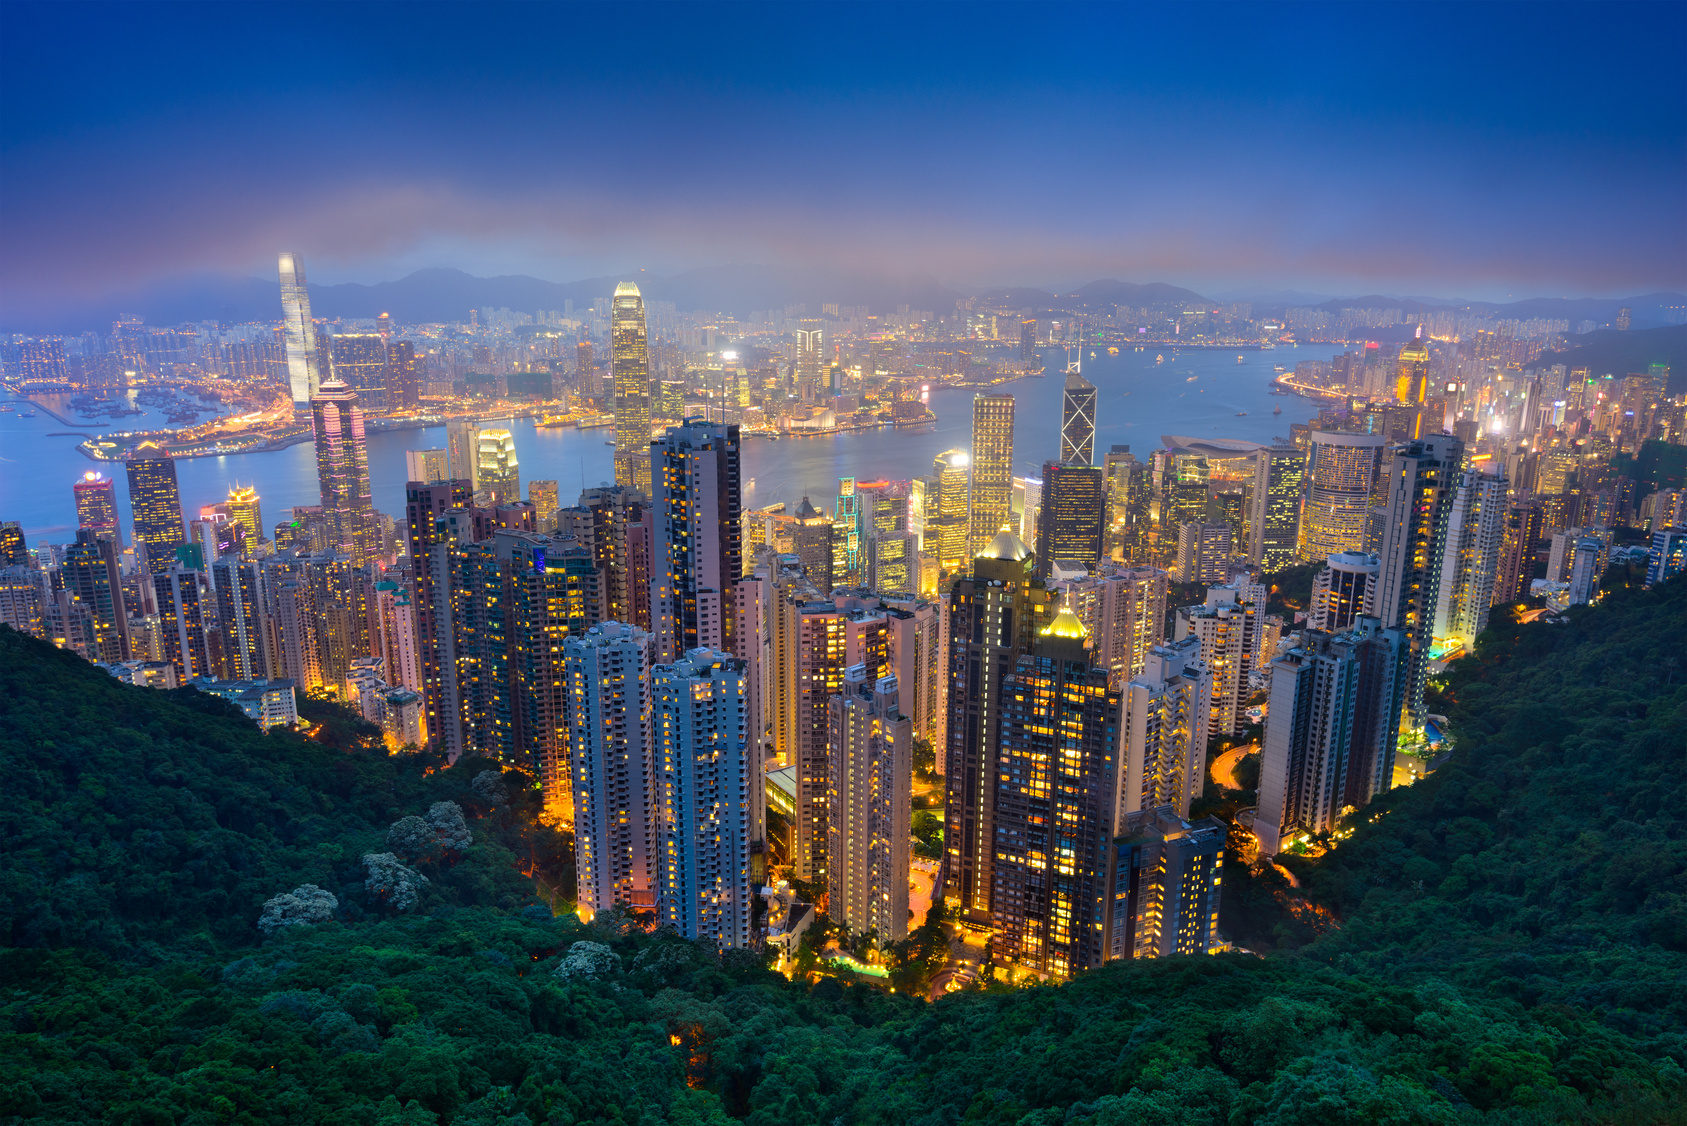 Hong Kong, China skyline from the peak.